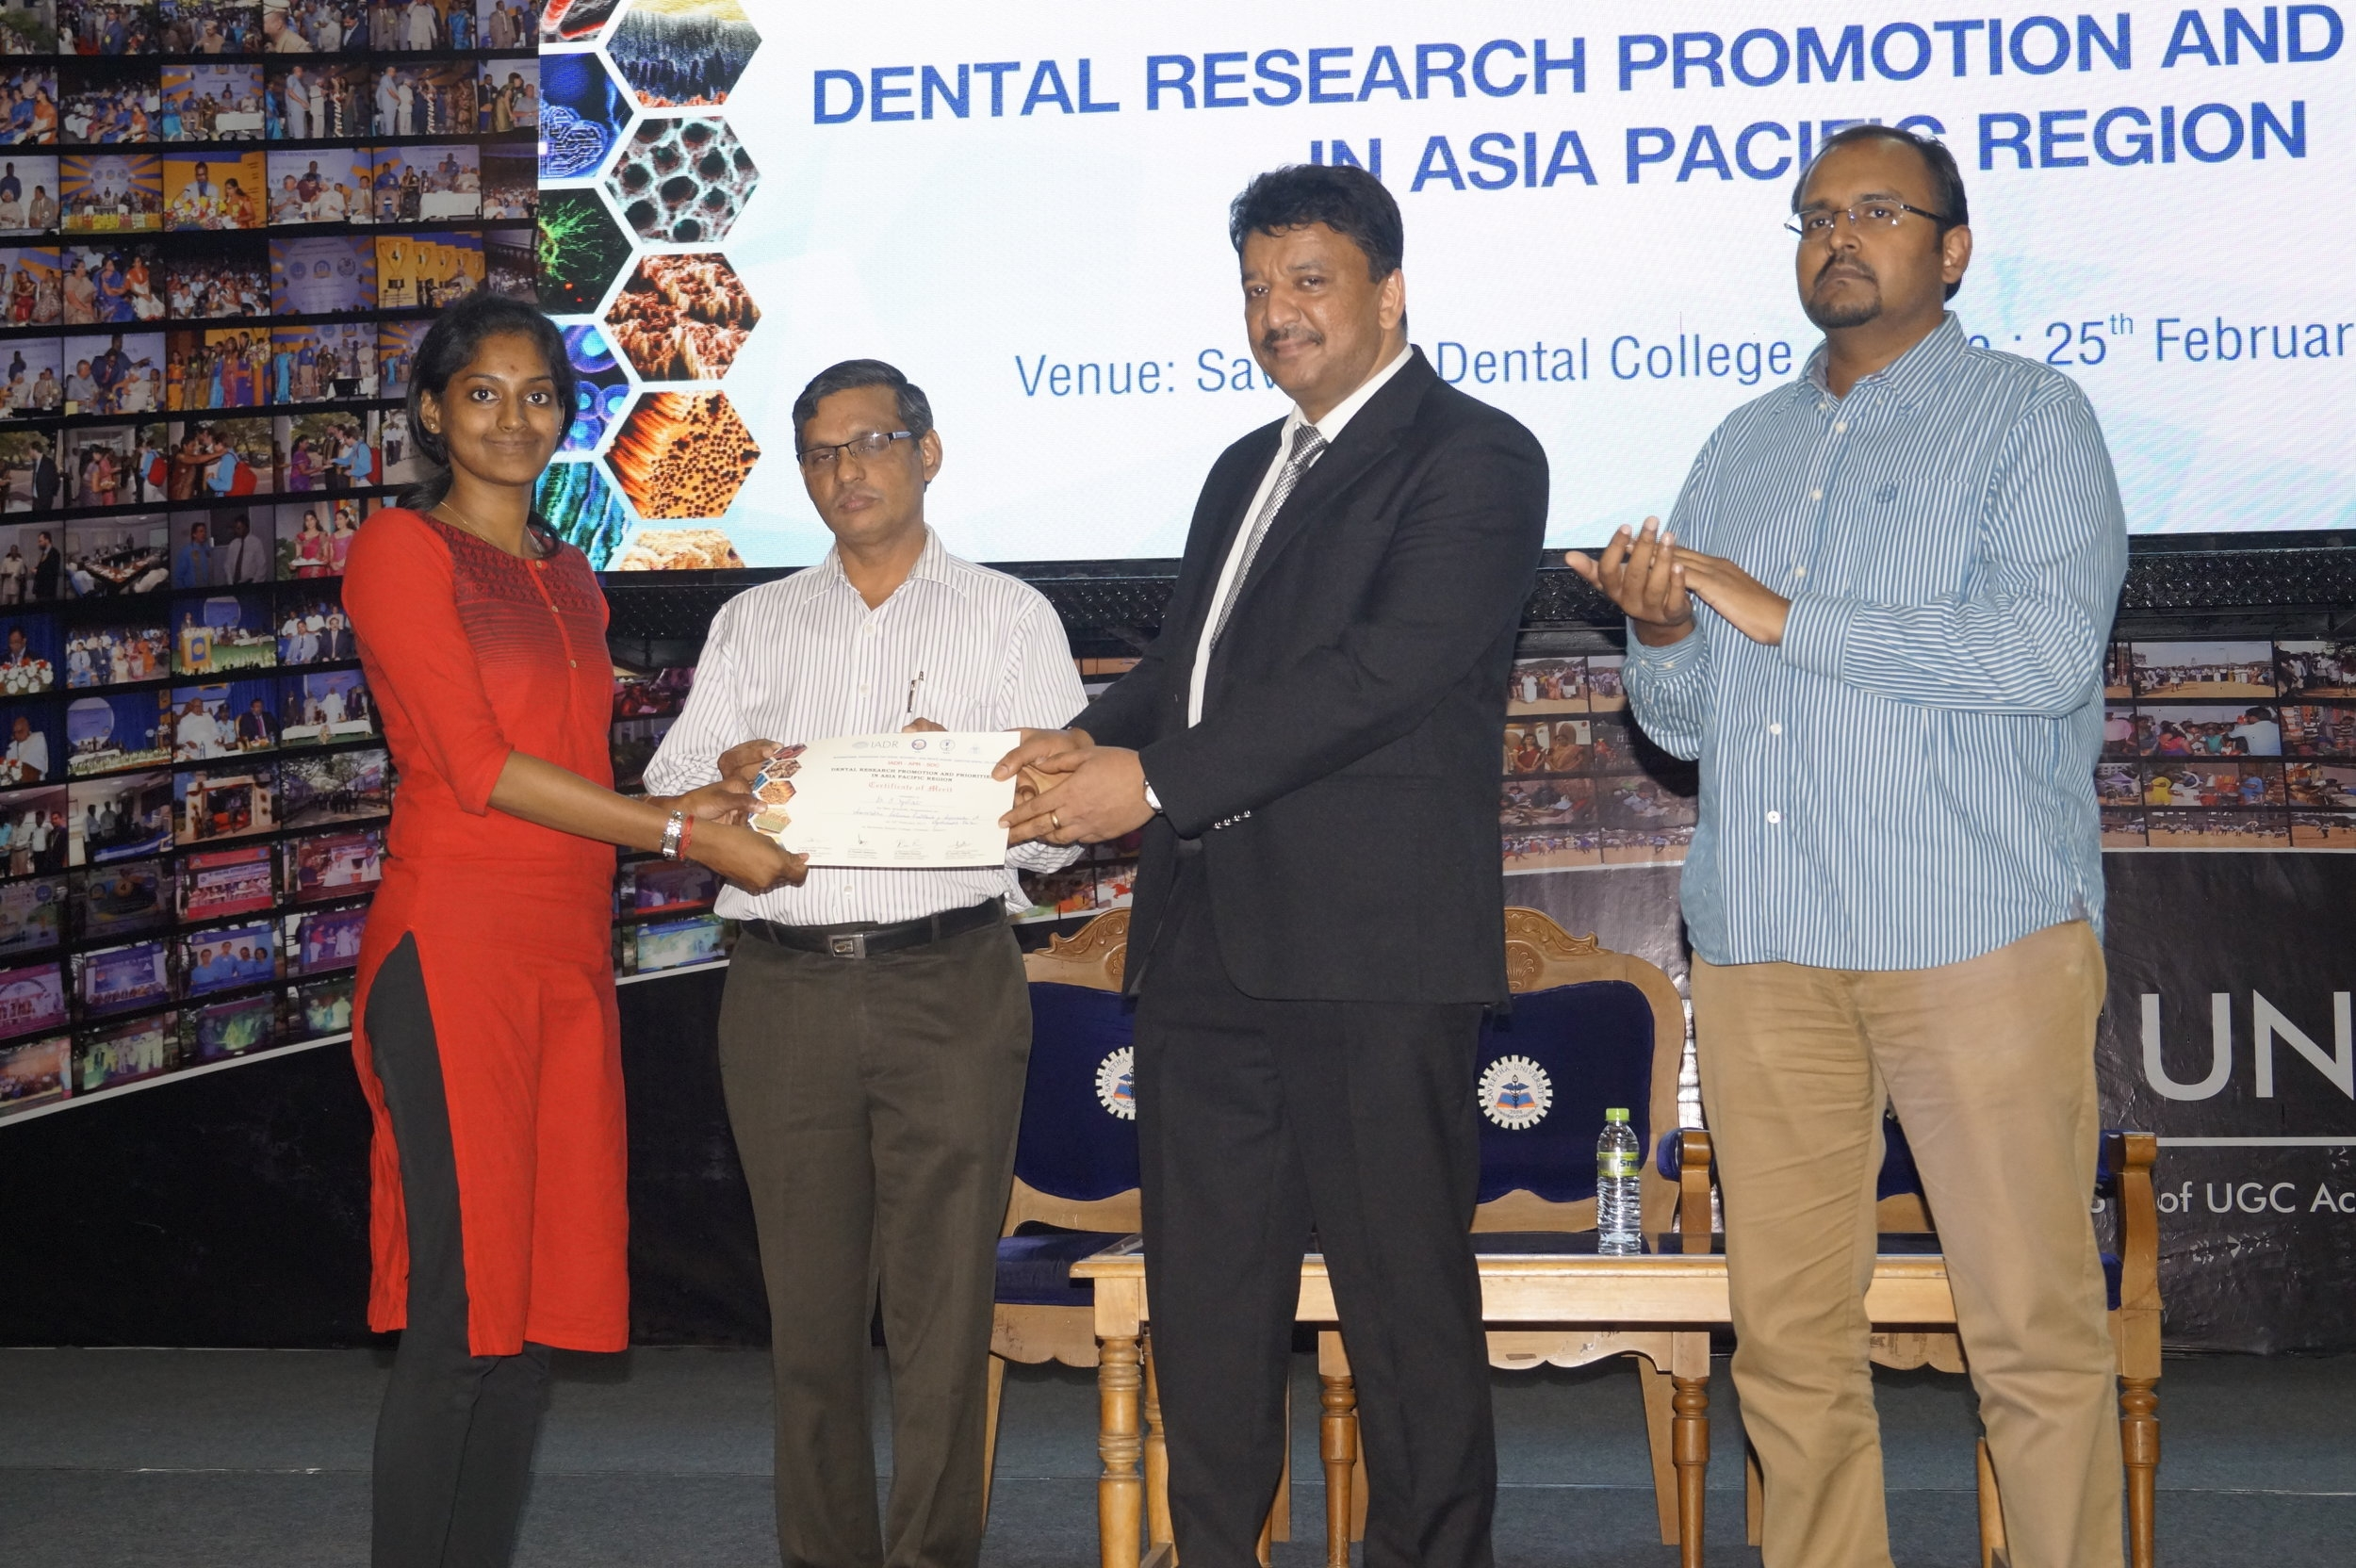 Best Poster - Dr.S. Vyshiali - II year Post GraduateTitle: Association between Halitosis and Depression - A systematic Review